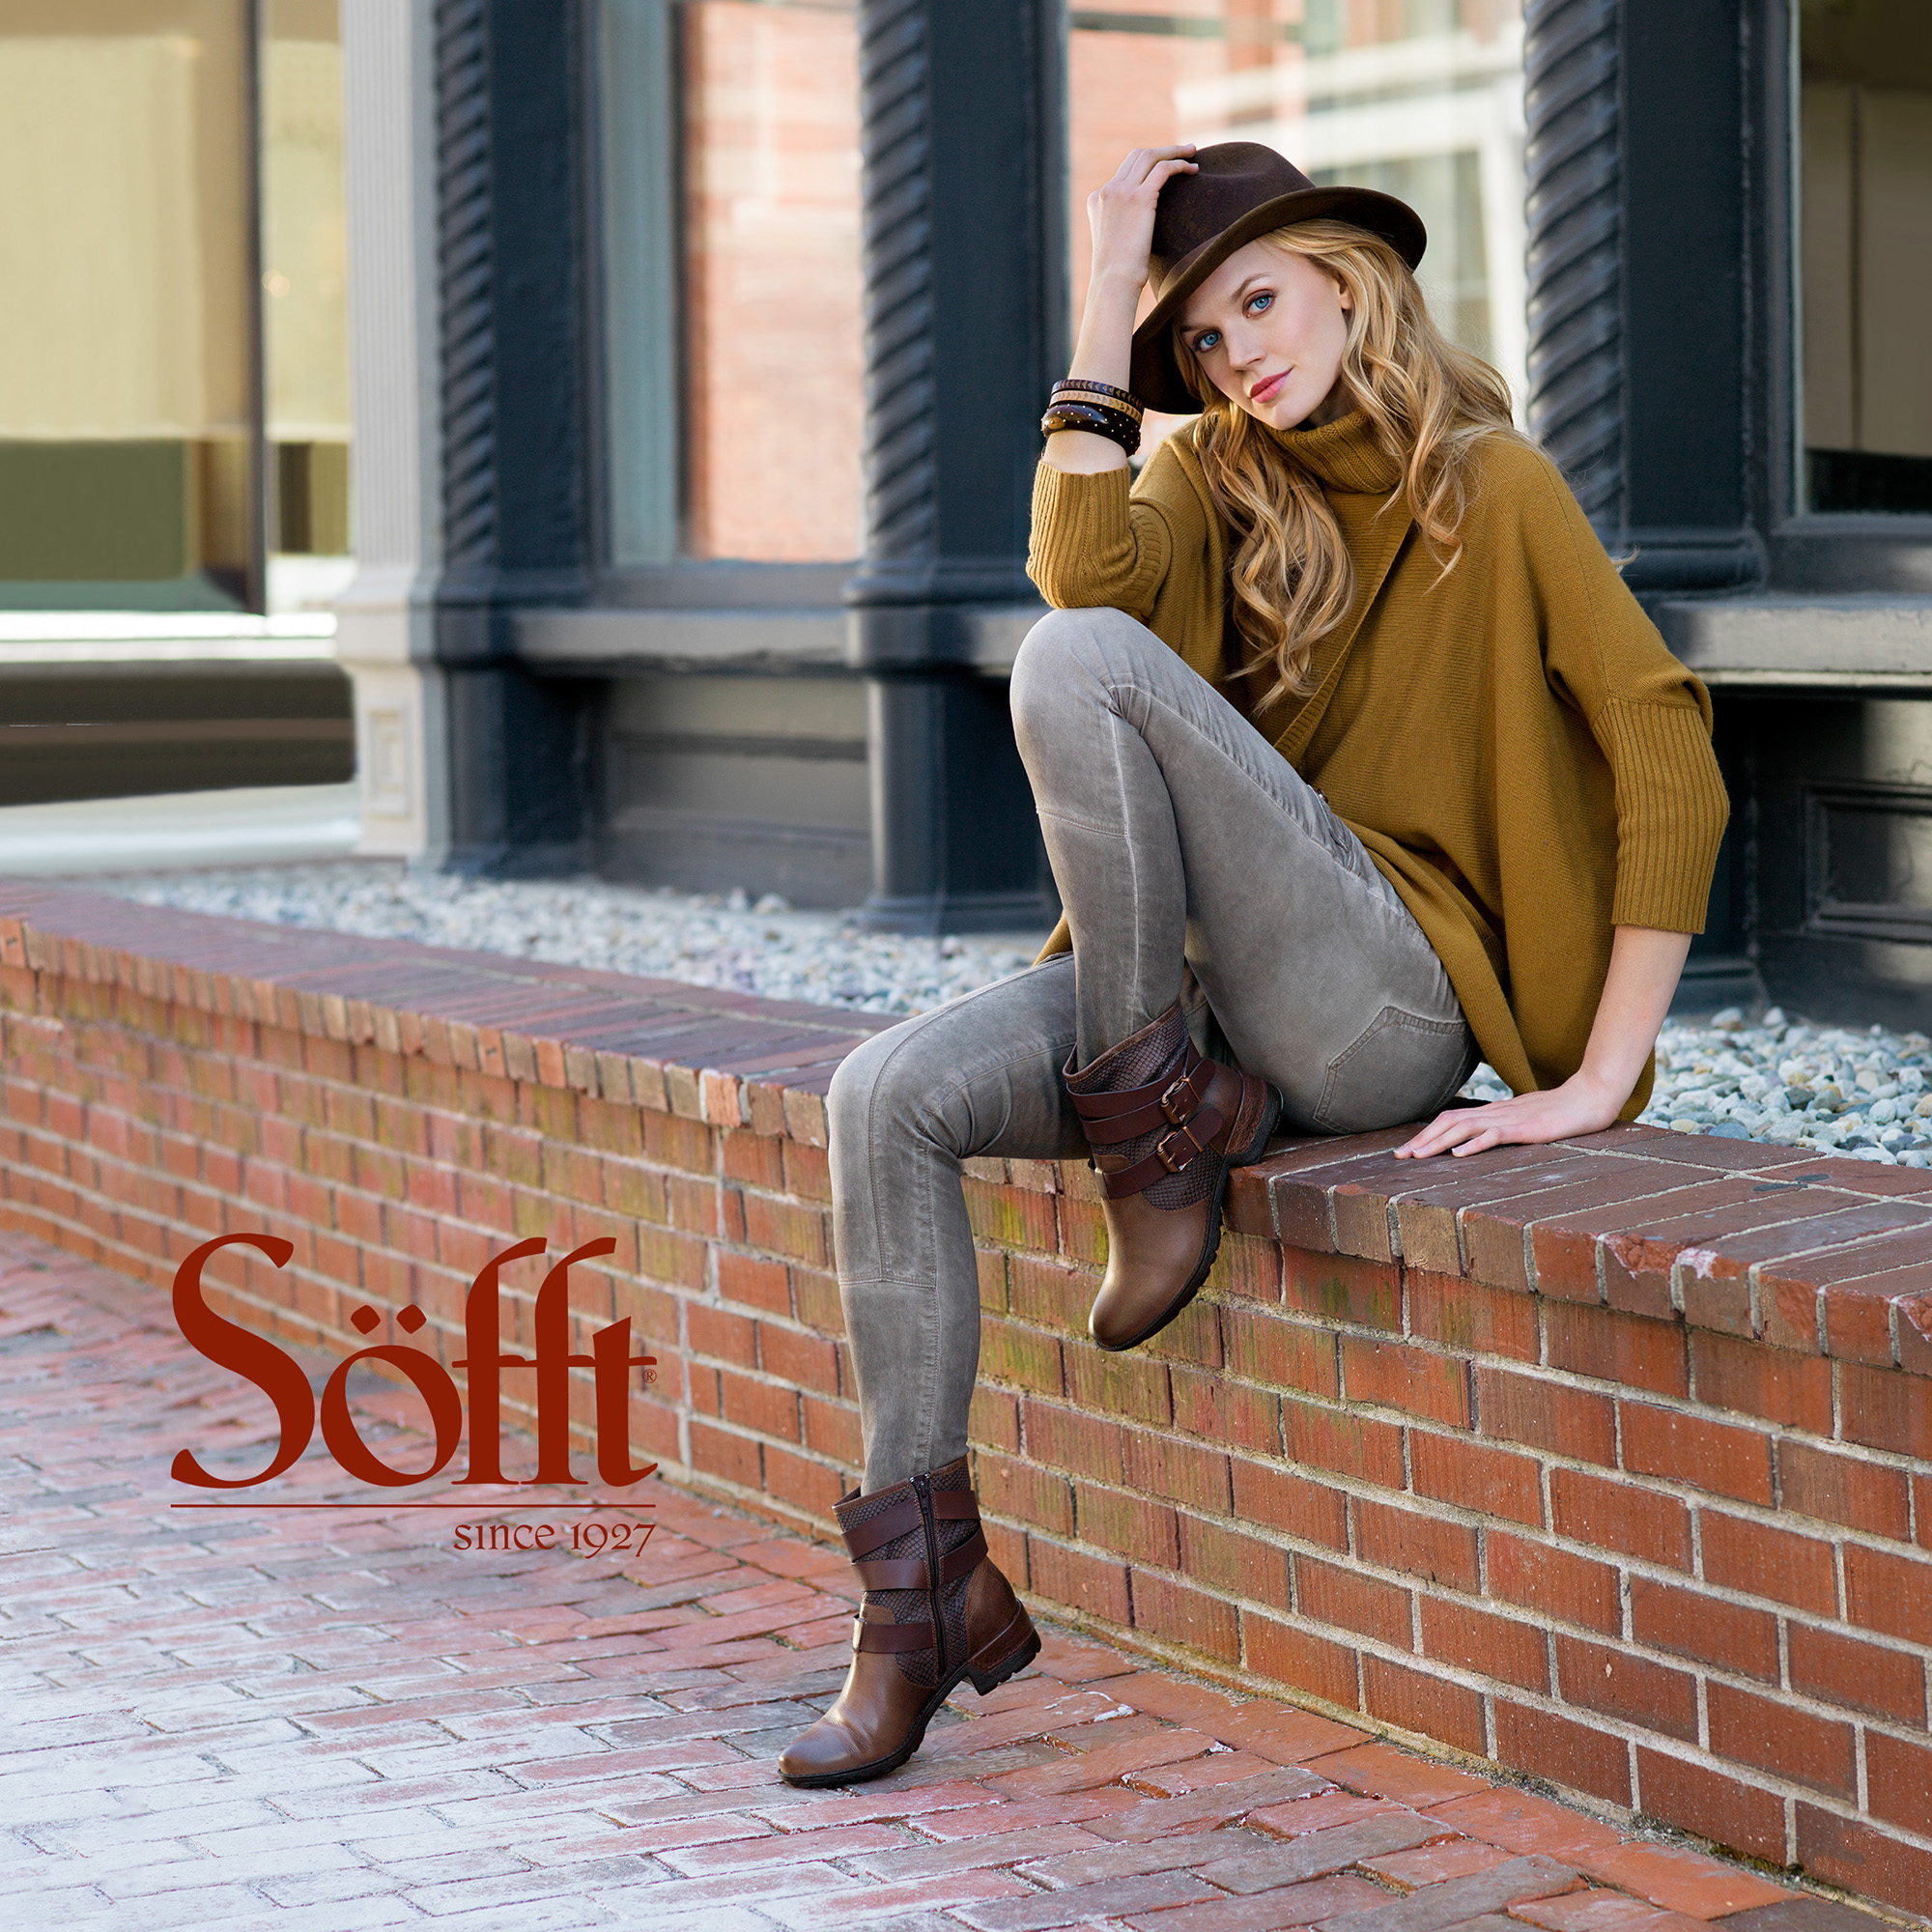 Sofft Shoe Fall 2015